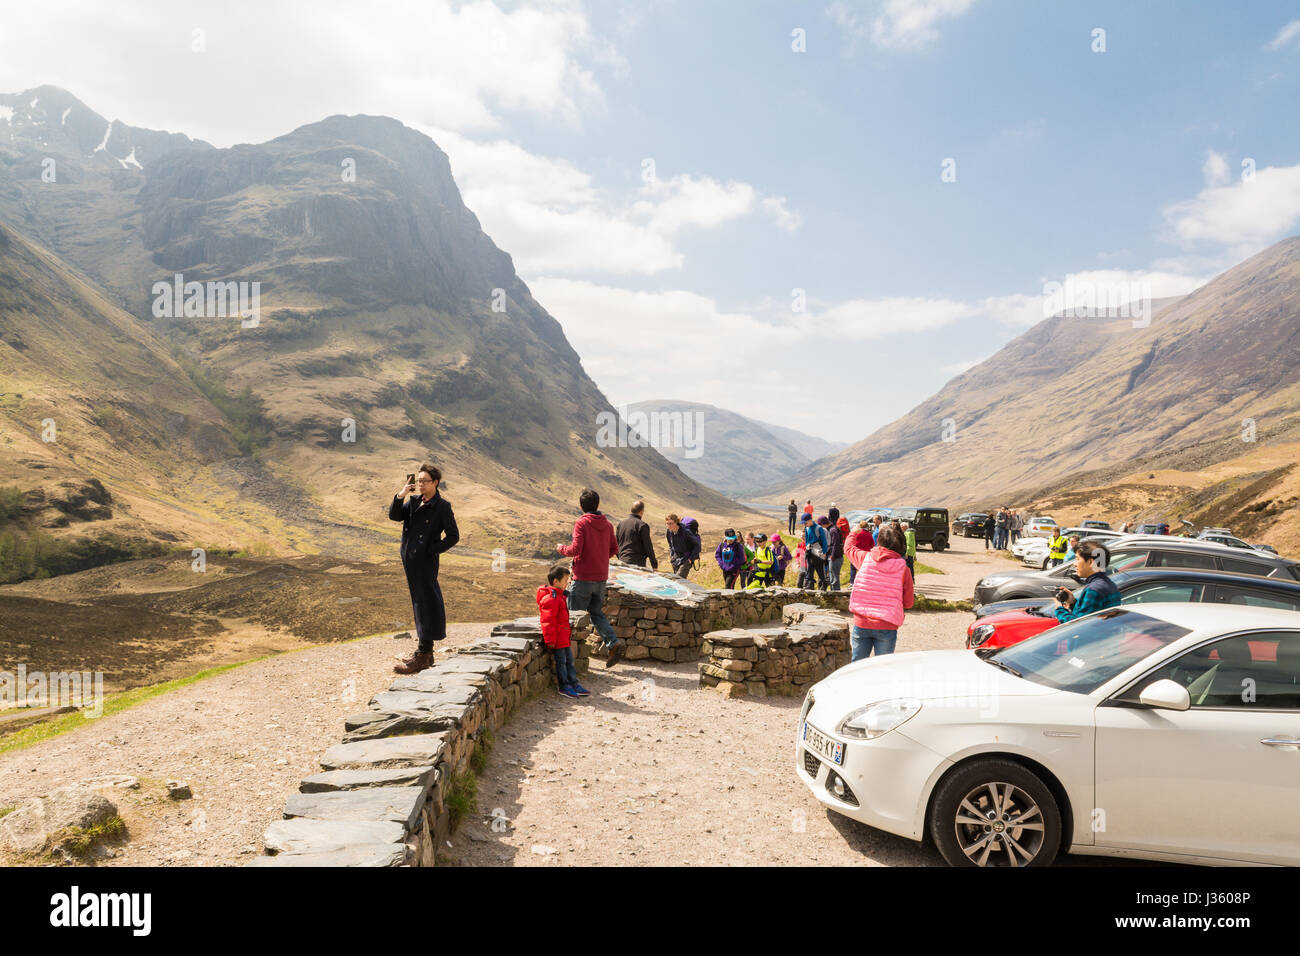 Glencoe, Scotland - tourists at the Three Sisters viewpoint - Stock Image